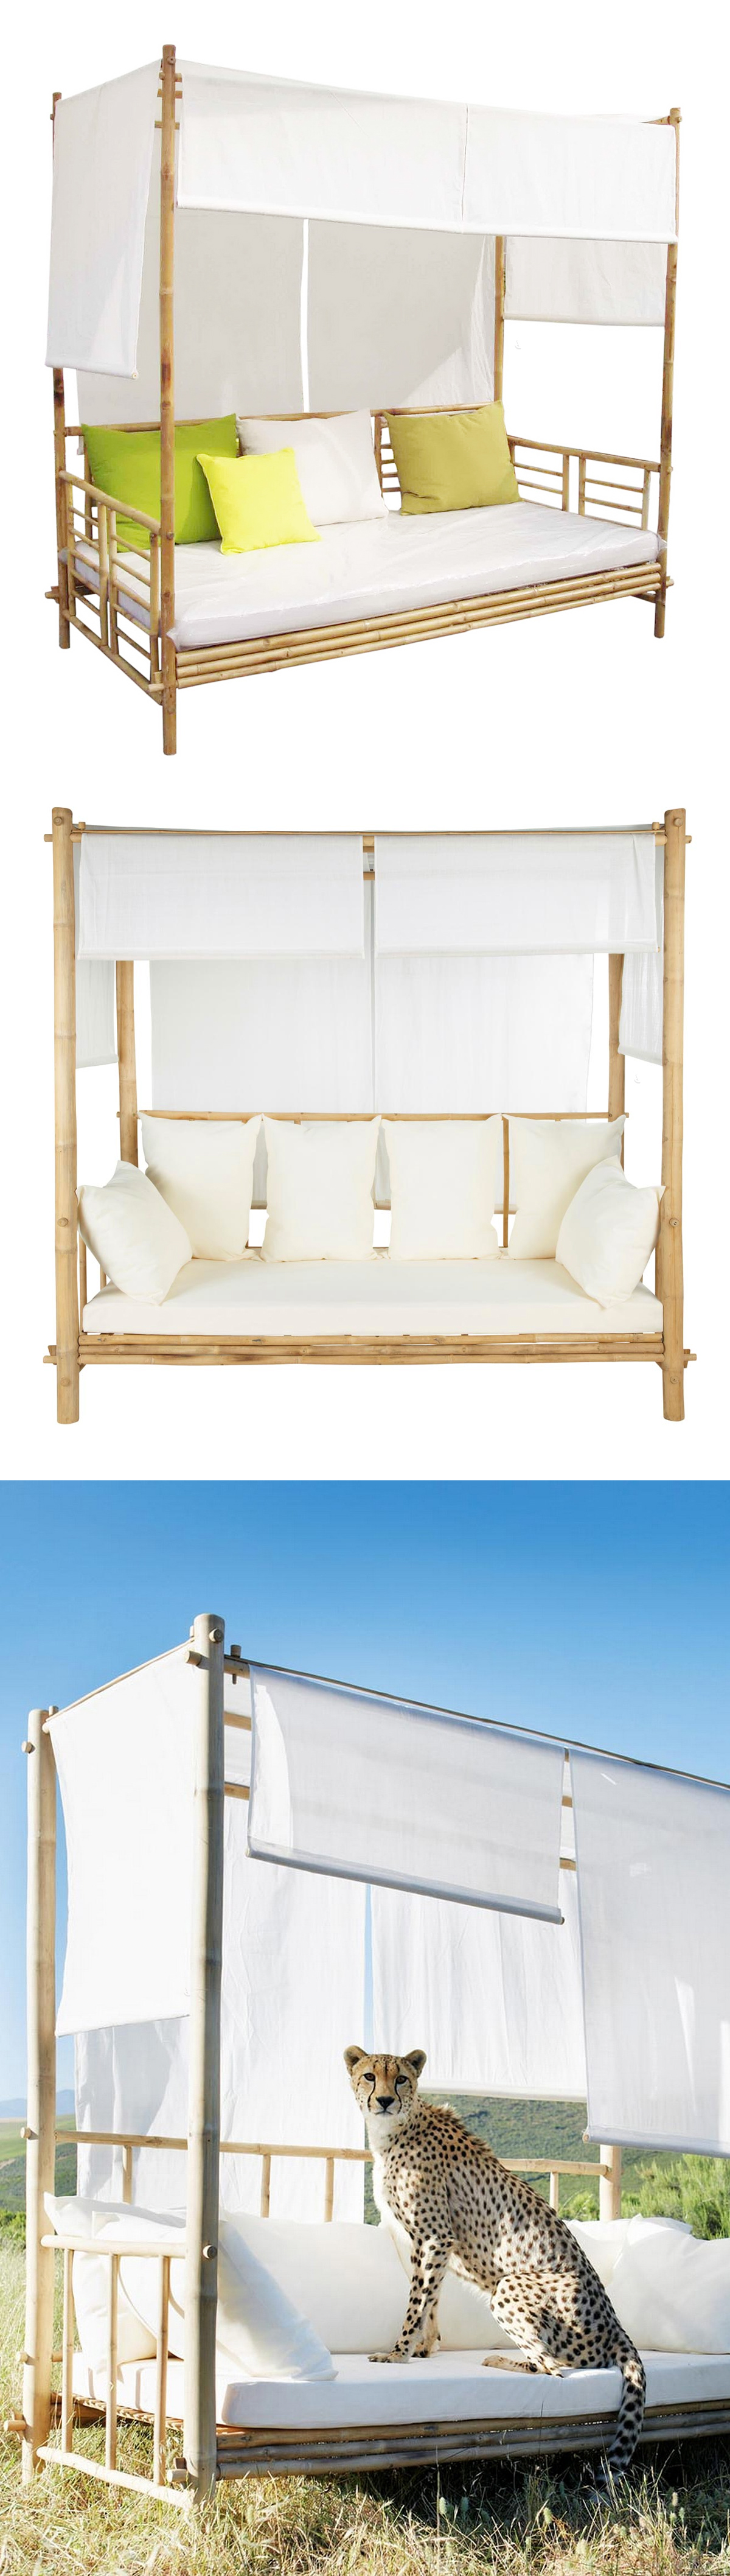 Bamboo daybed. | Furniture Love | Pinterest | Daybed, Living rooms ...